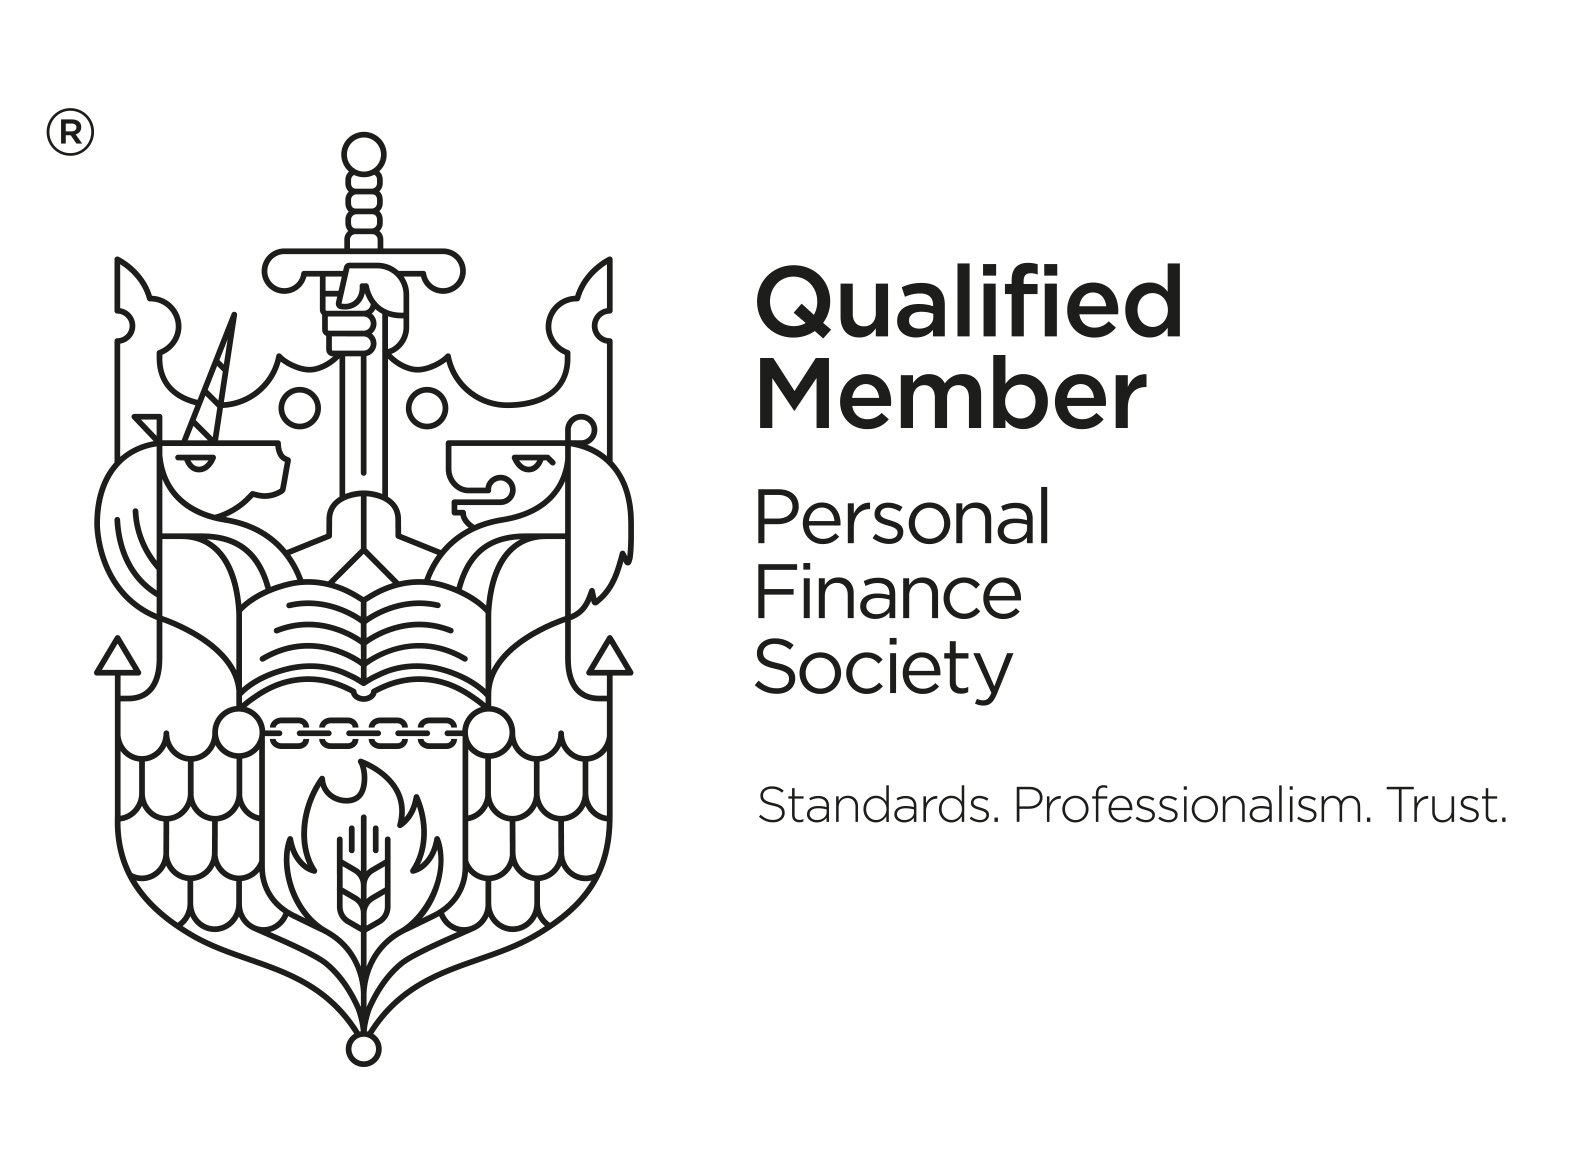 Personal Finance Society Accreditation